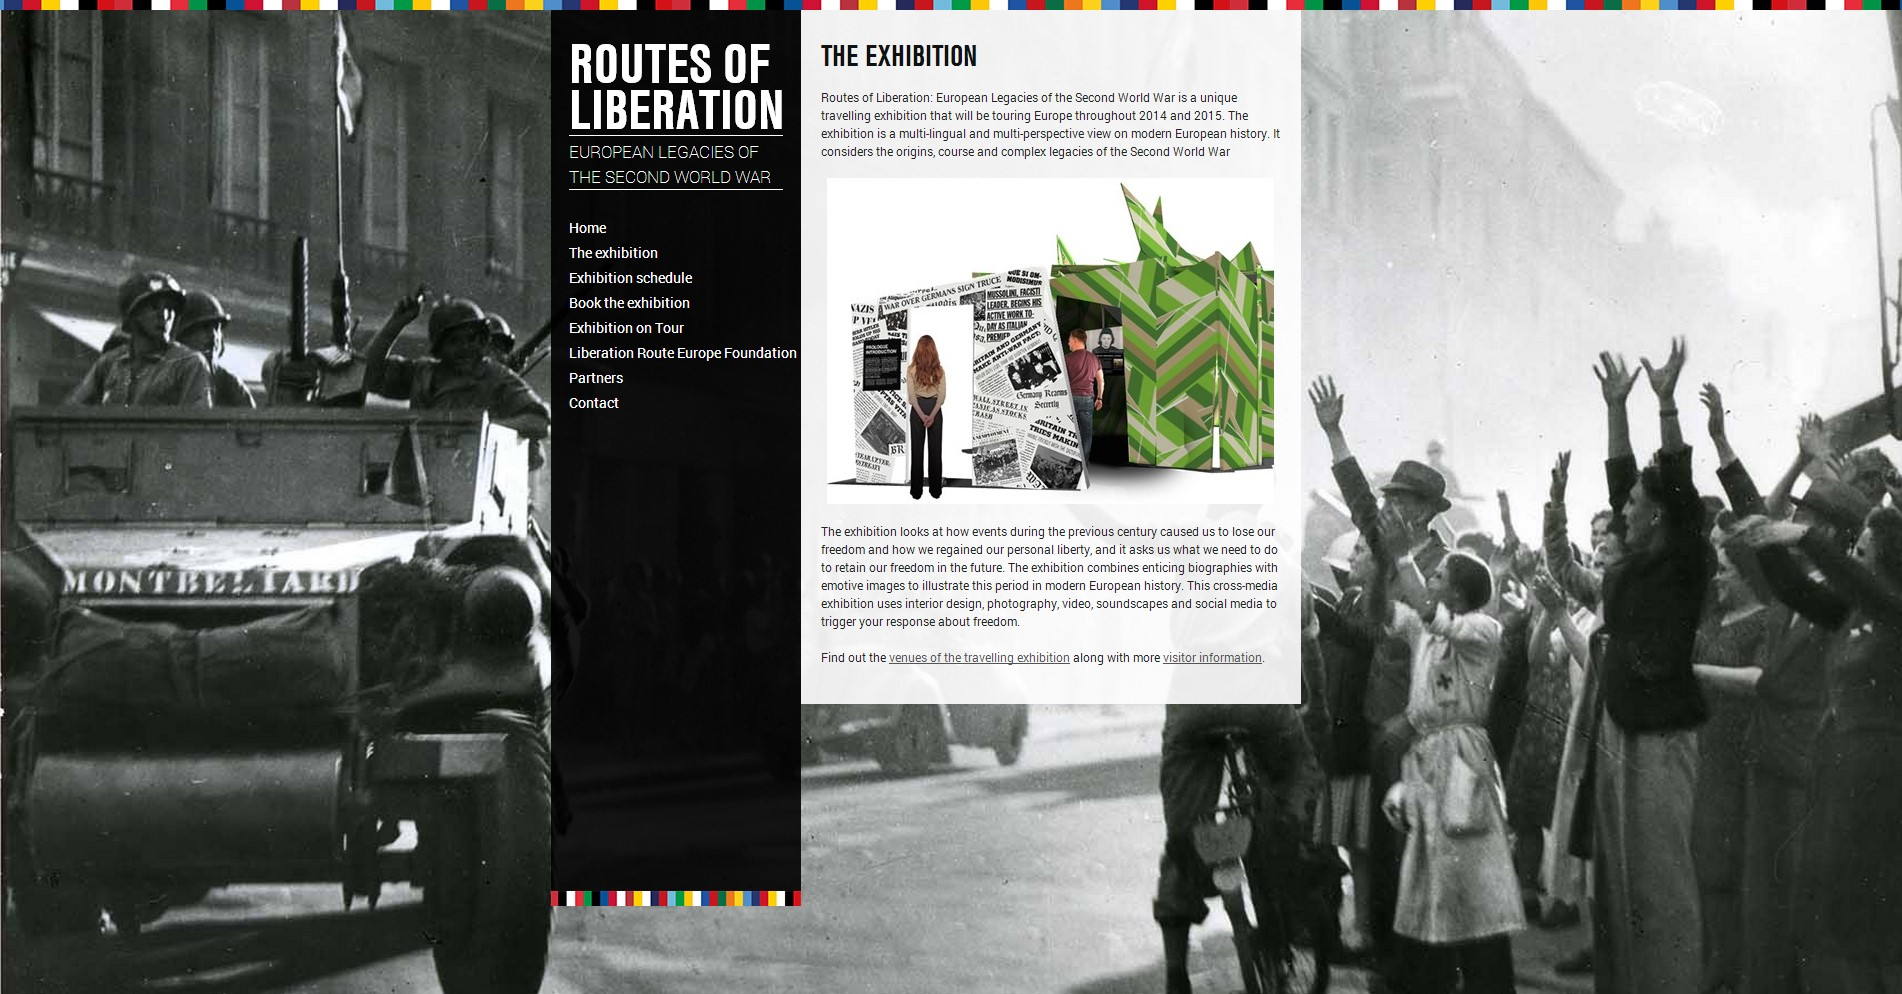 Routes of Liberation: European Legacies of the Second World